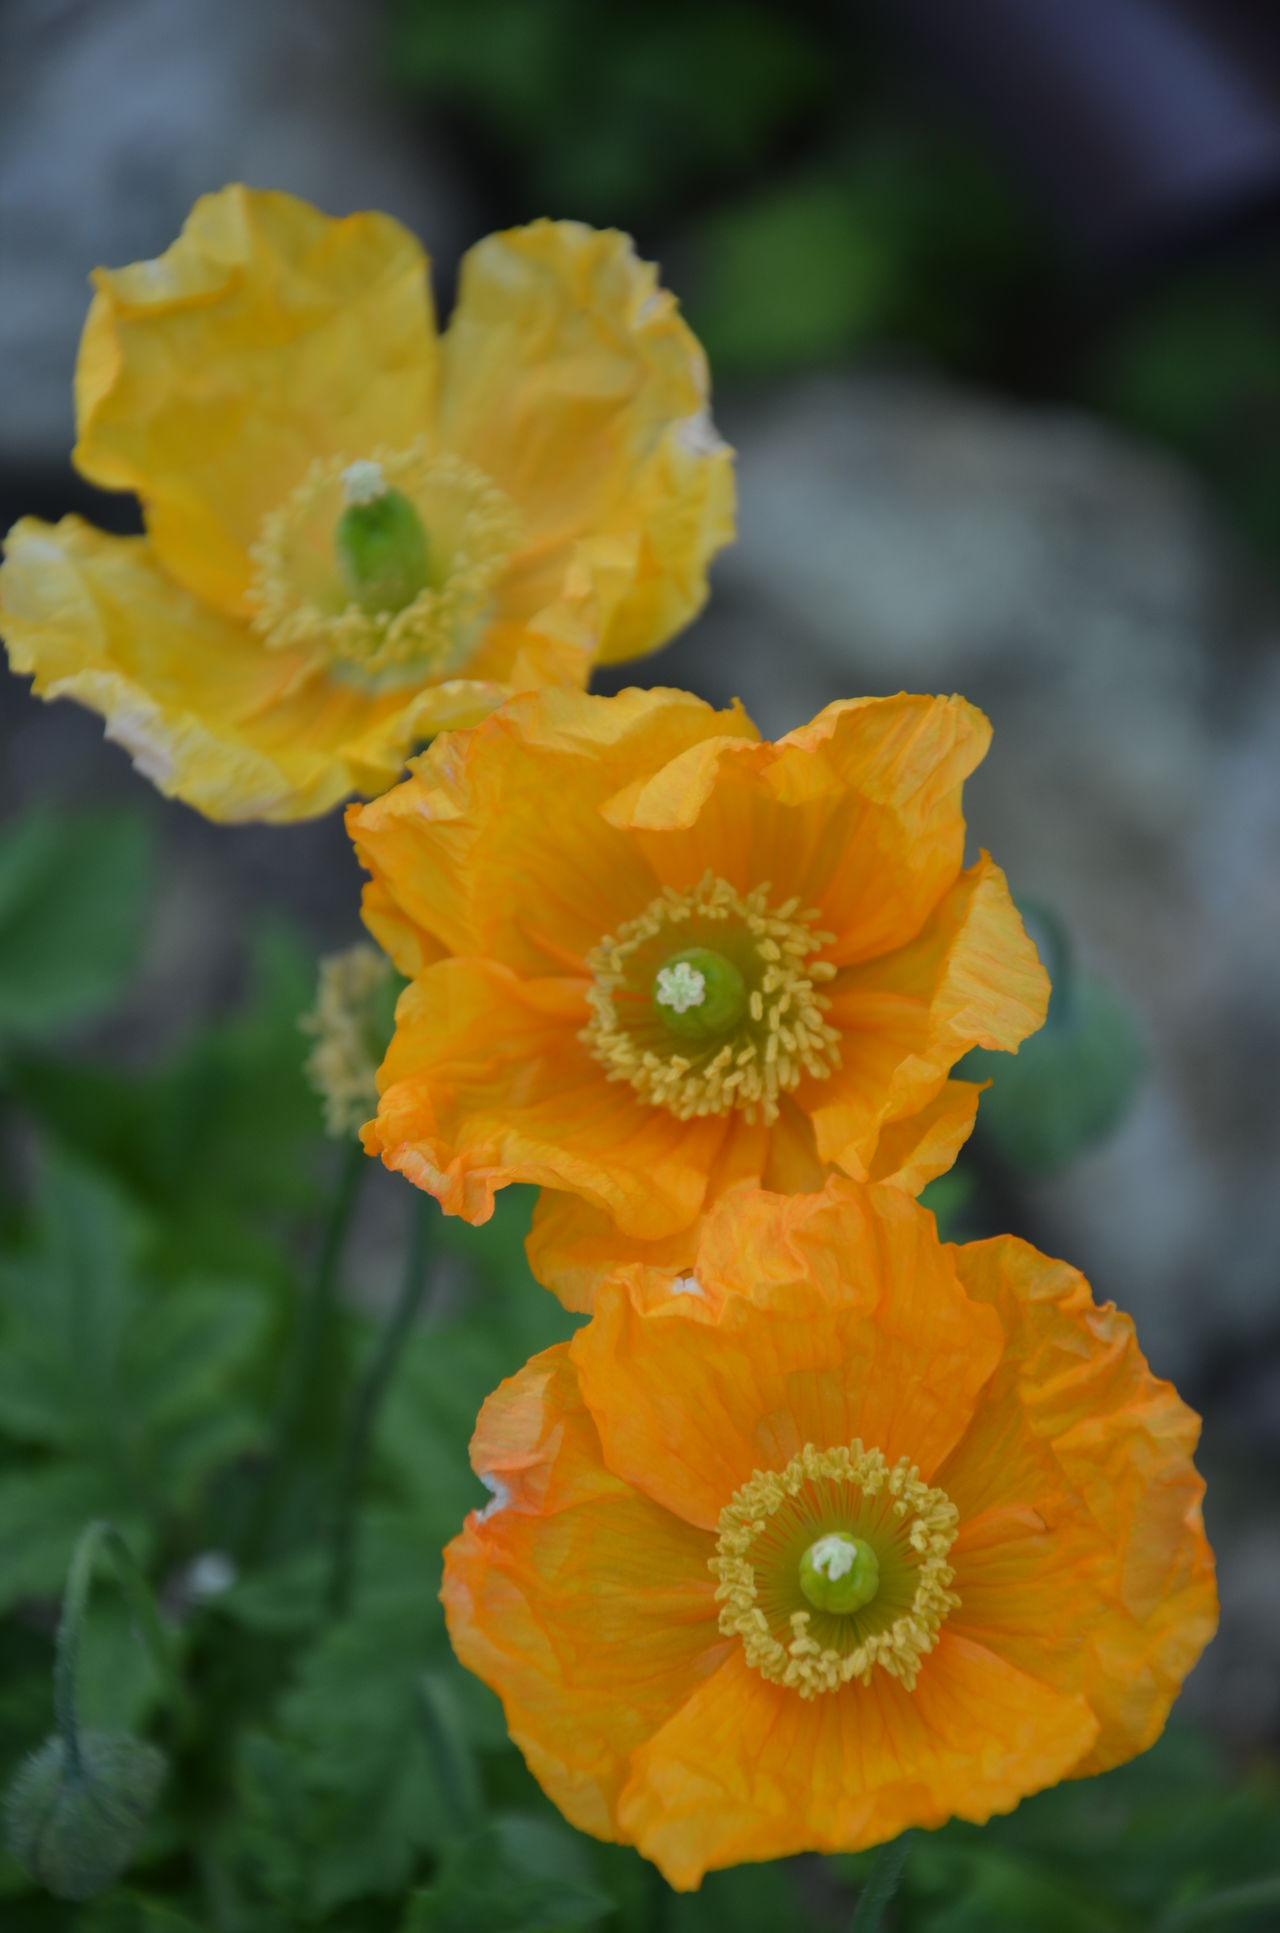 Close-up Flowers Flowers, Nature And Beauty Flowers,Plants & Garden Poppy Poppy Flower Poppy Flowers Yellow Flower